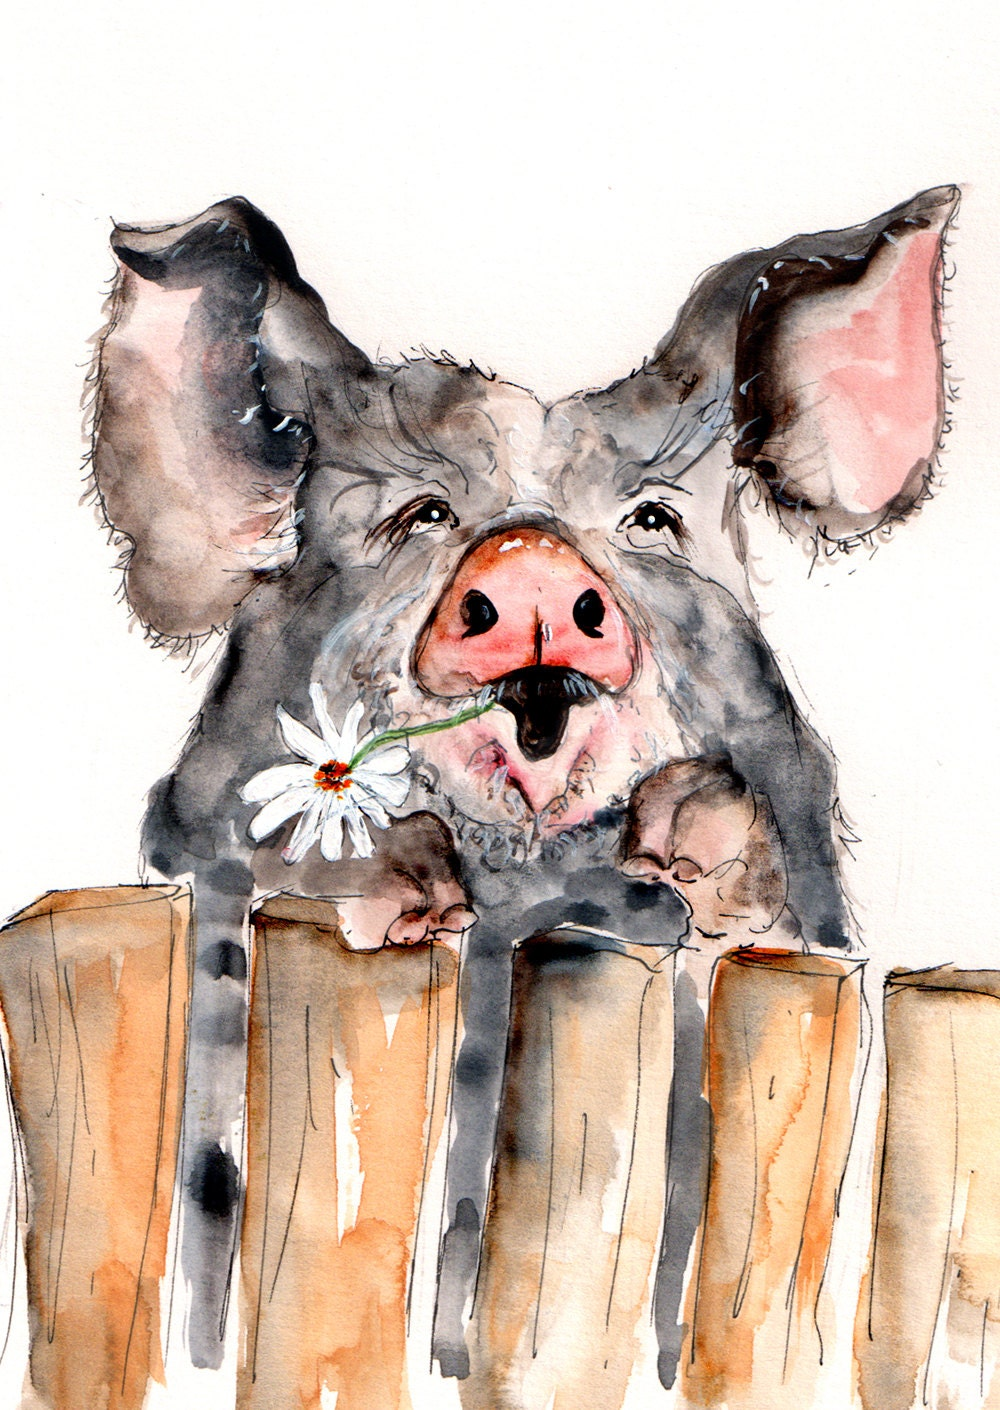 Pig Illustration Painting Pig Watercolor Art 6x4 Print